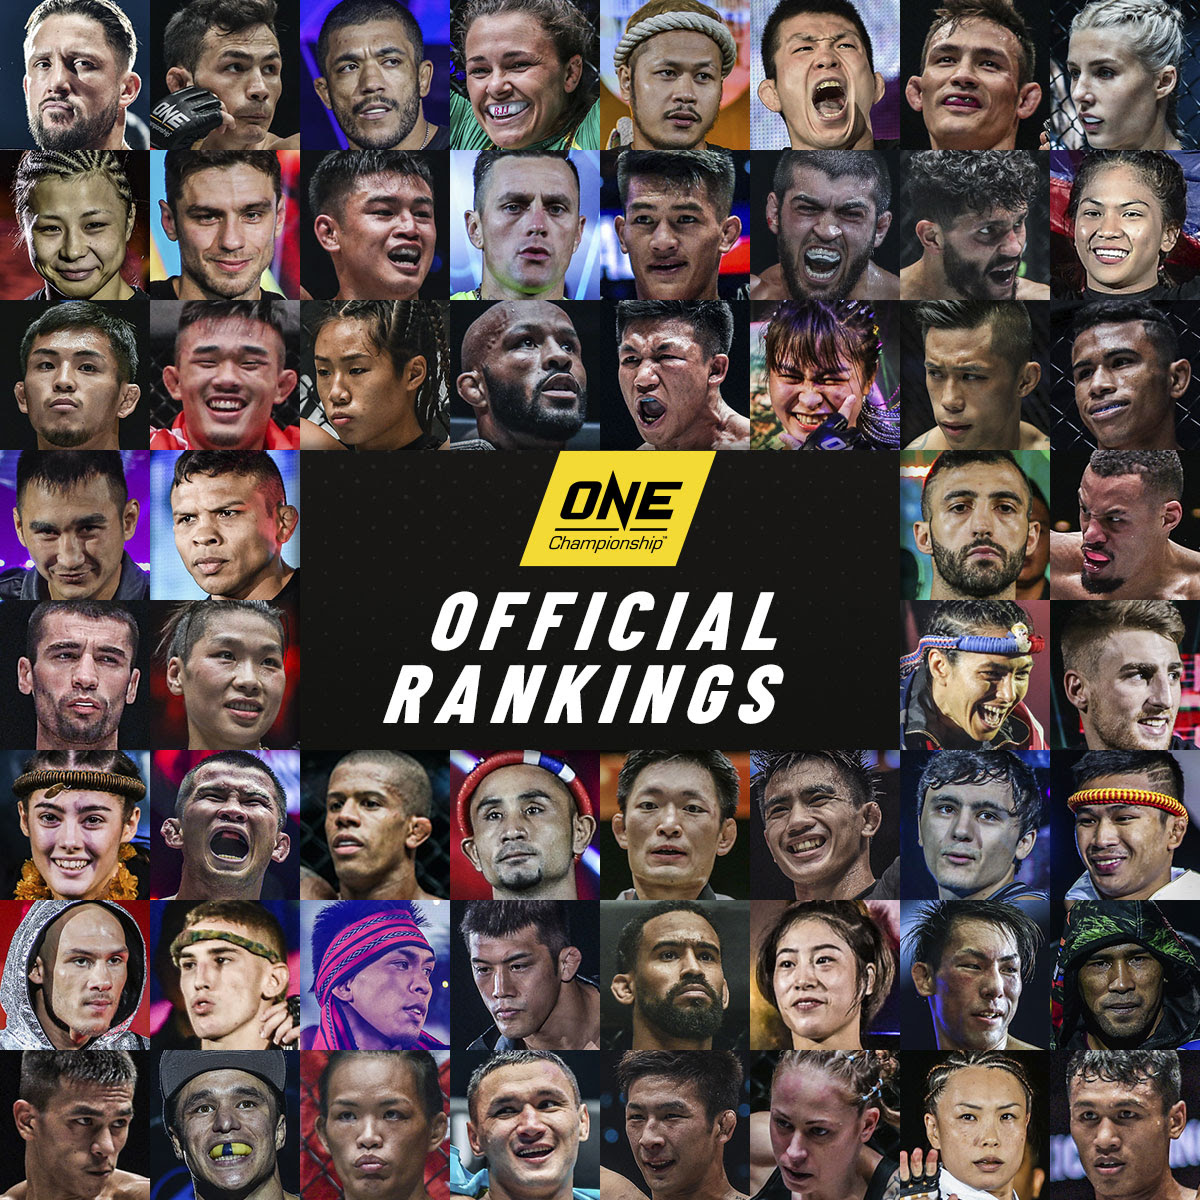 The largest global sports media property in Asian history, ONE Championship™ (ONE), today announced its first official athlete rankings for select weight divisions across Mixed Martial Arts, Muay Thai, and Kickboxing. Rankings for other weight divisions will be introduced in the future.